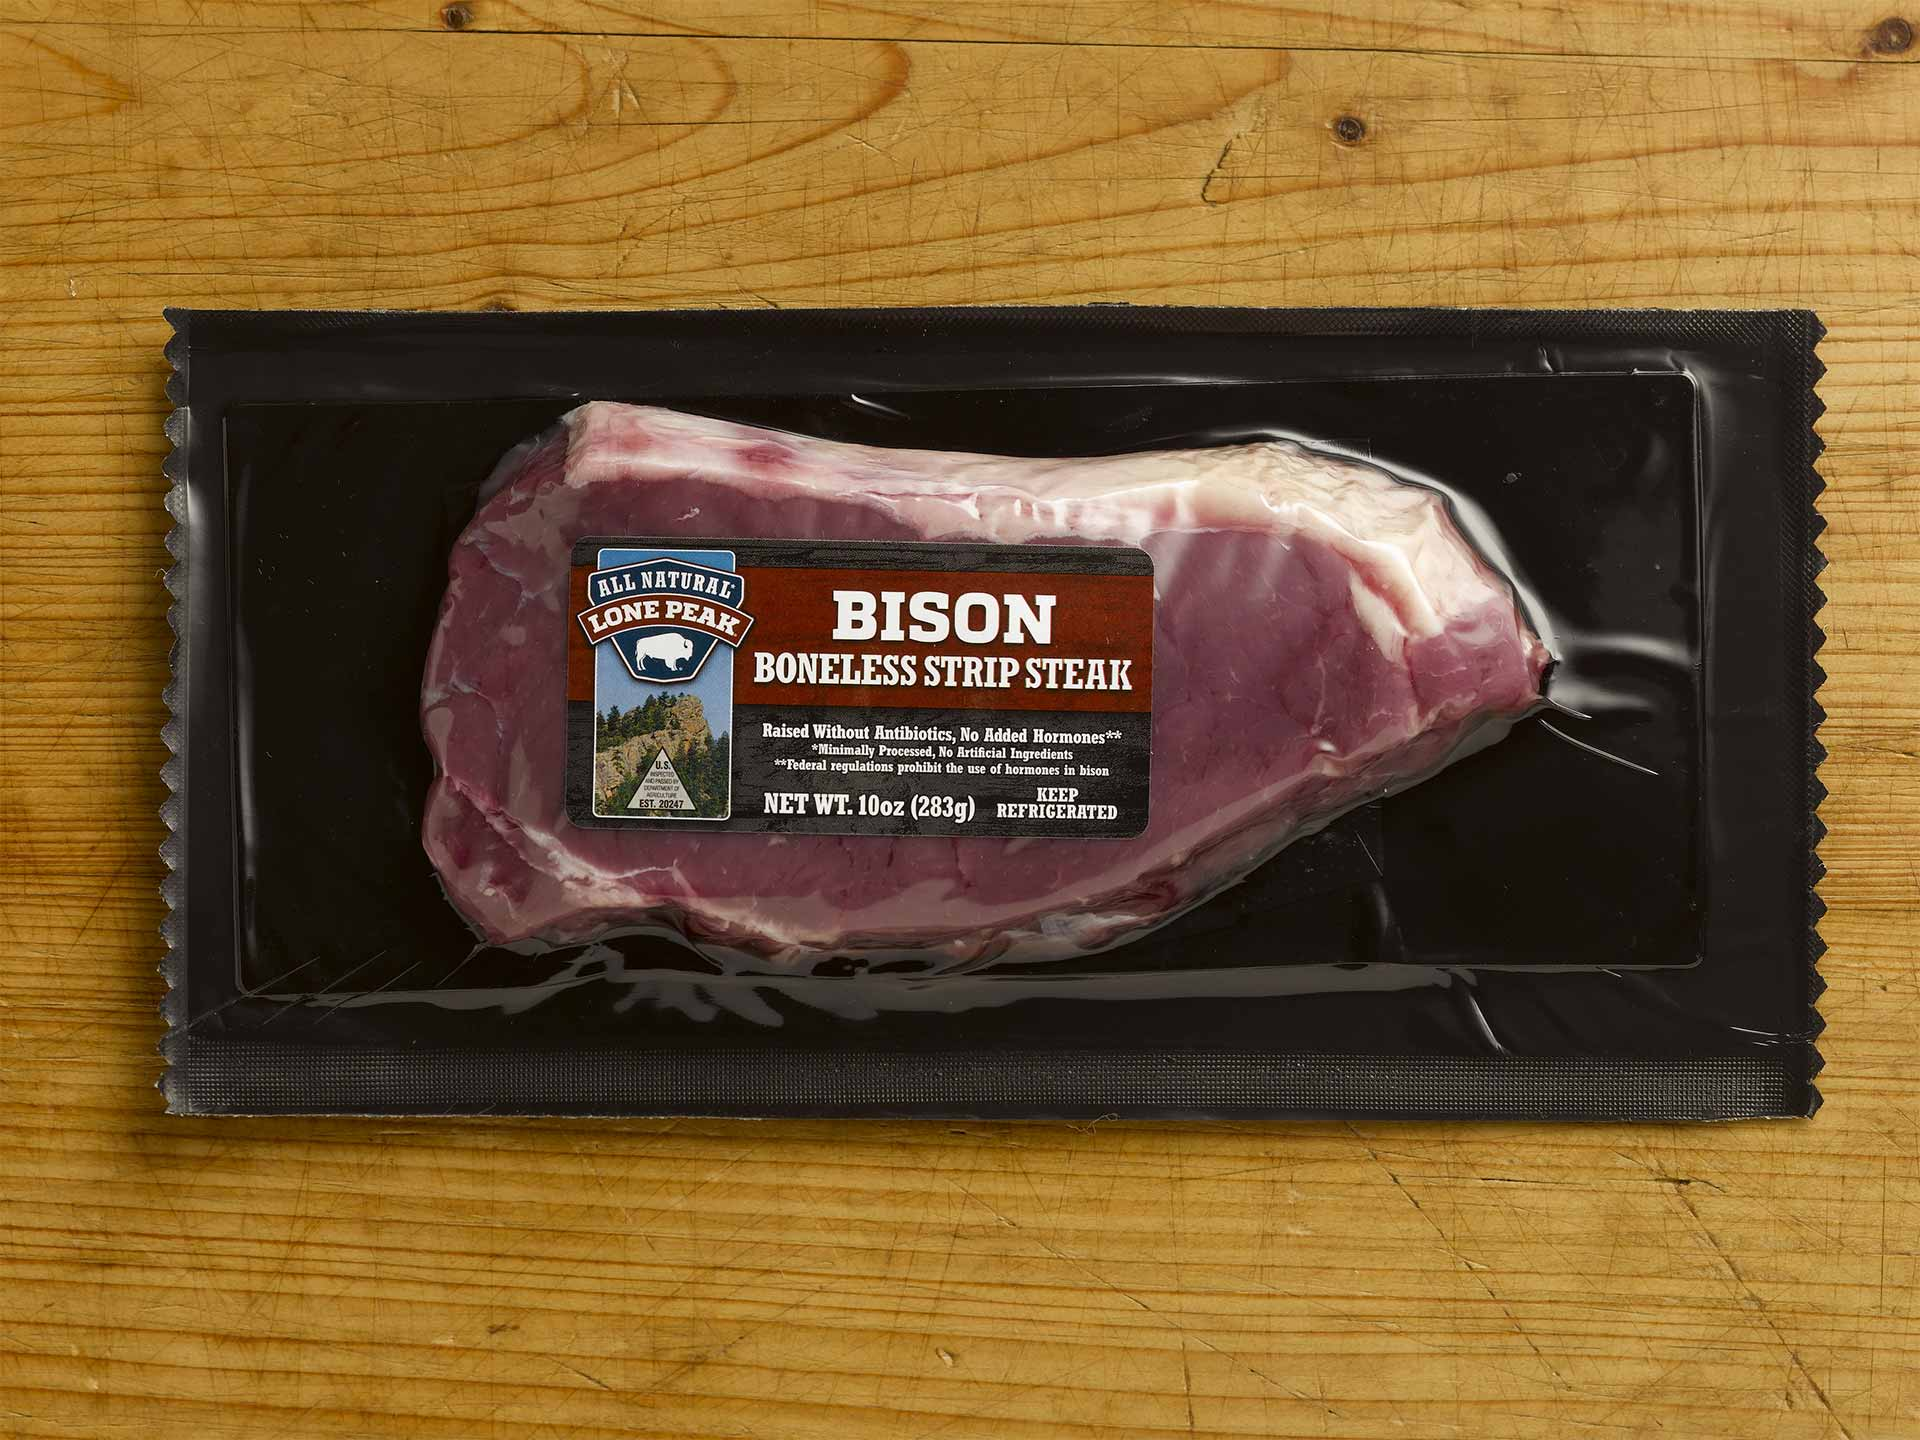 Bison Boneless Strip Steak